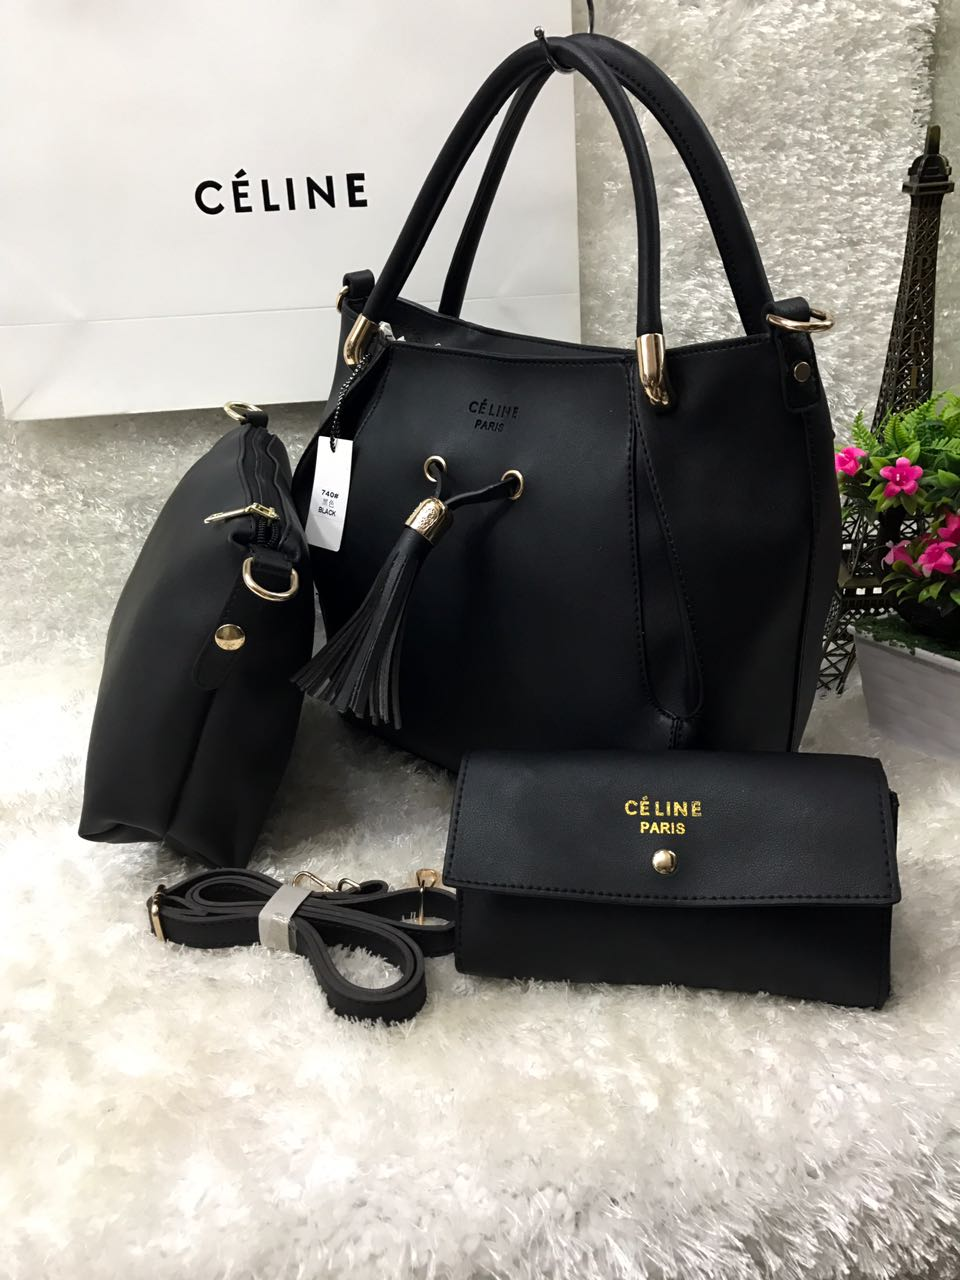 b8e82360308c CÉLINE Paris 3 In 1 Handbag Set For Women Black Price In Pakistan